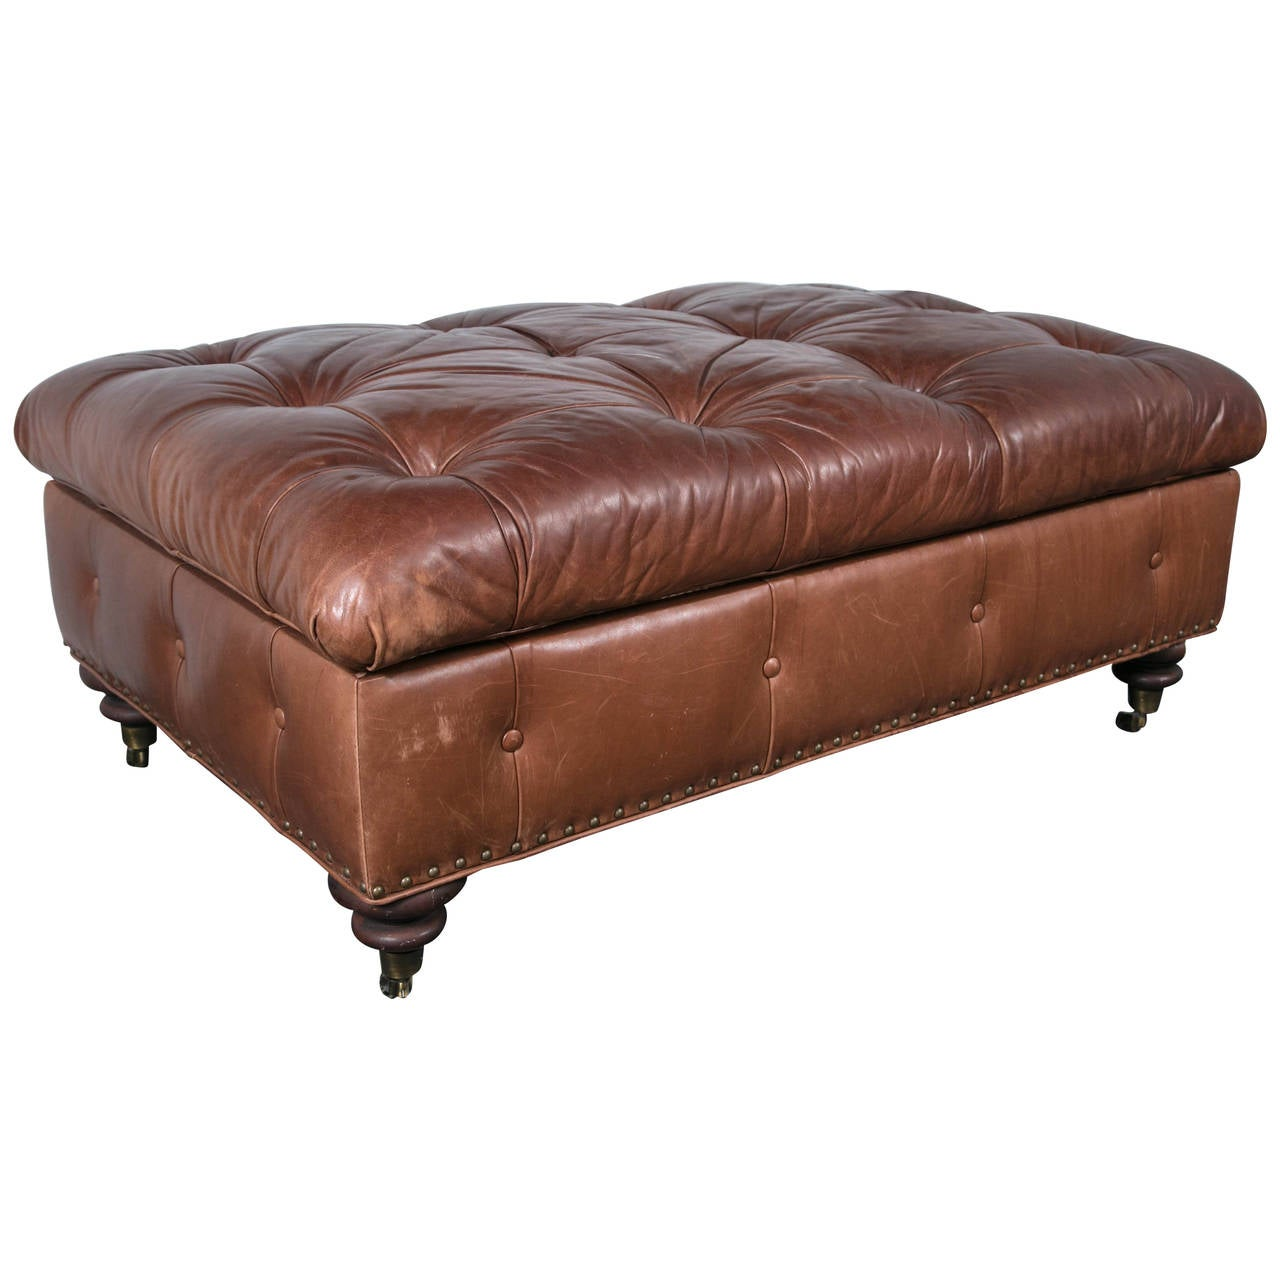 Storage Ottoman Bench Ralph Leather Storage Ottoman Bench At 1stdibs Modus Leather Storage